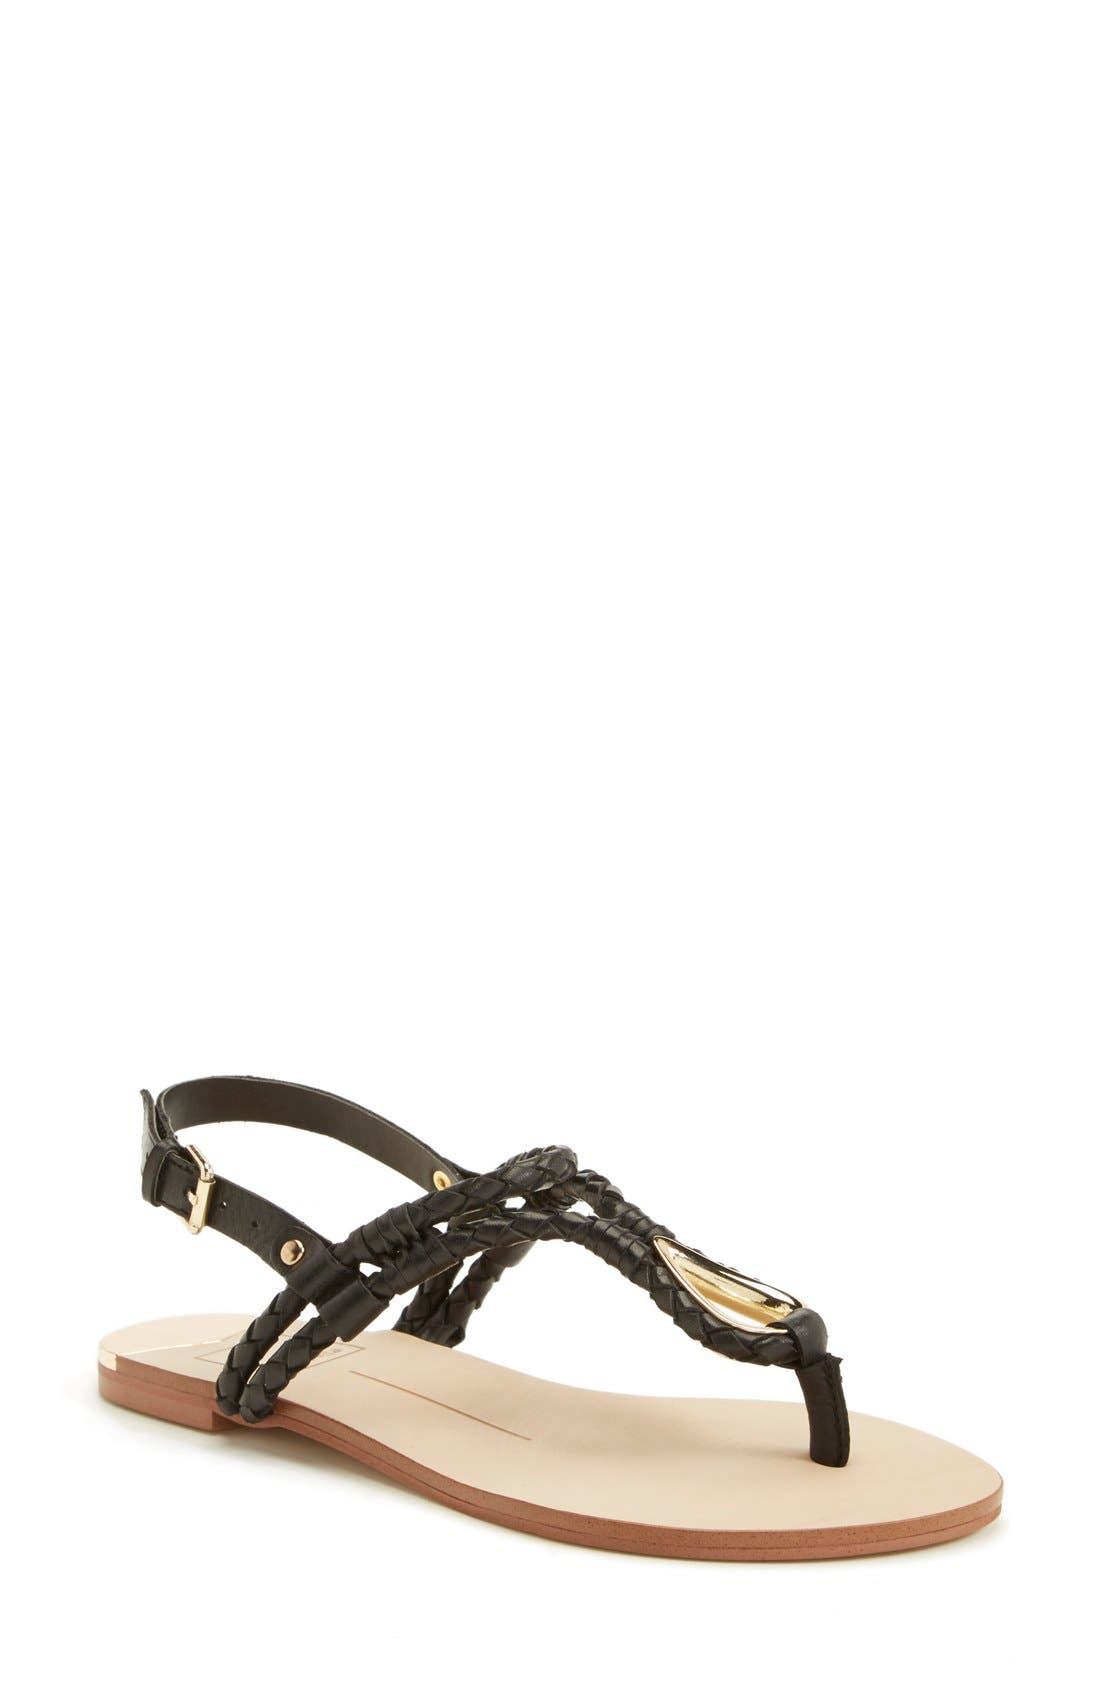 'Dixin' Thong Sandal,                         Main,                         color, Black Leather